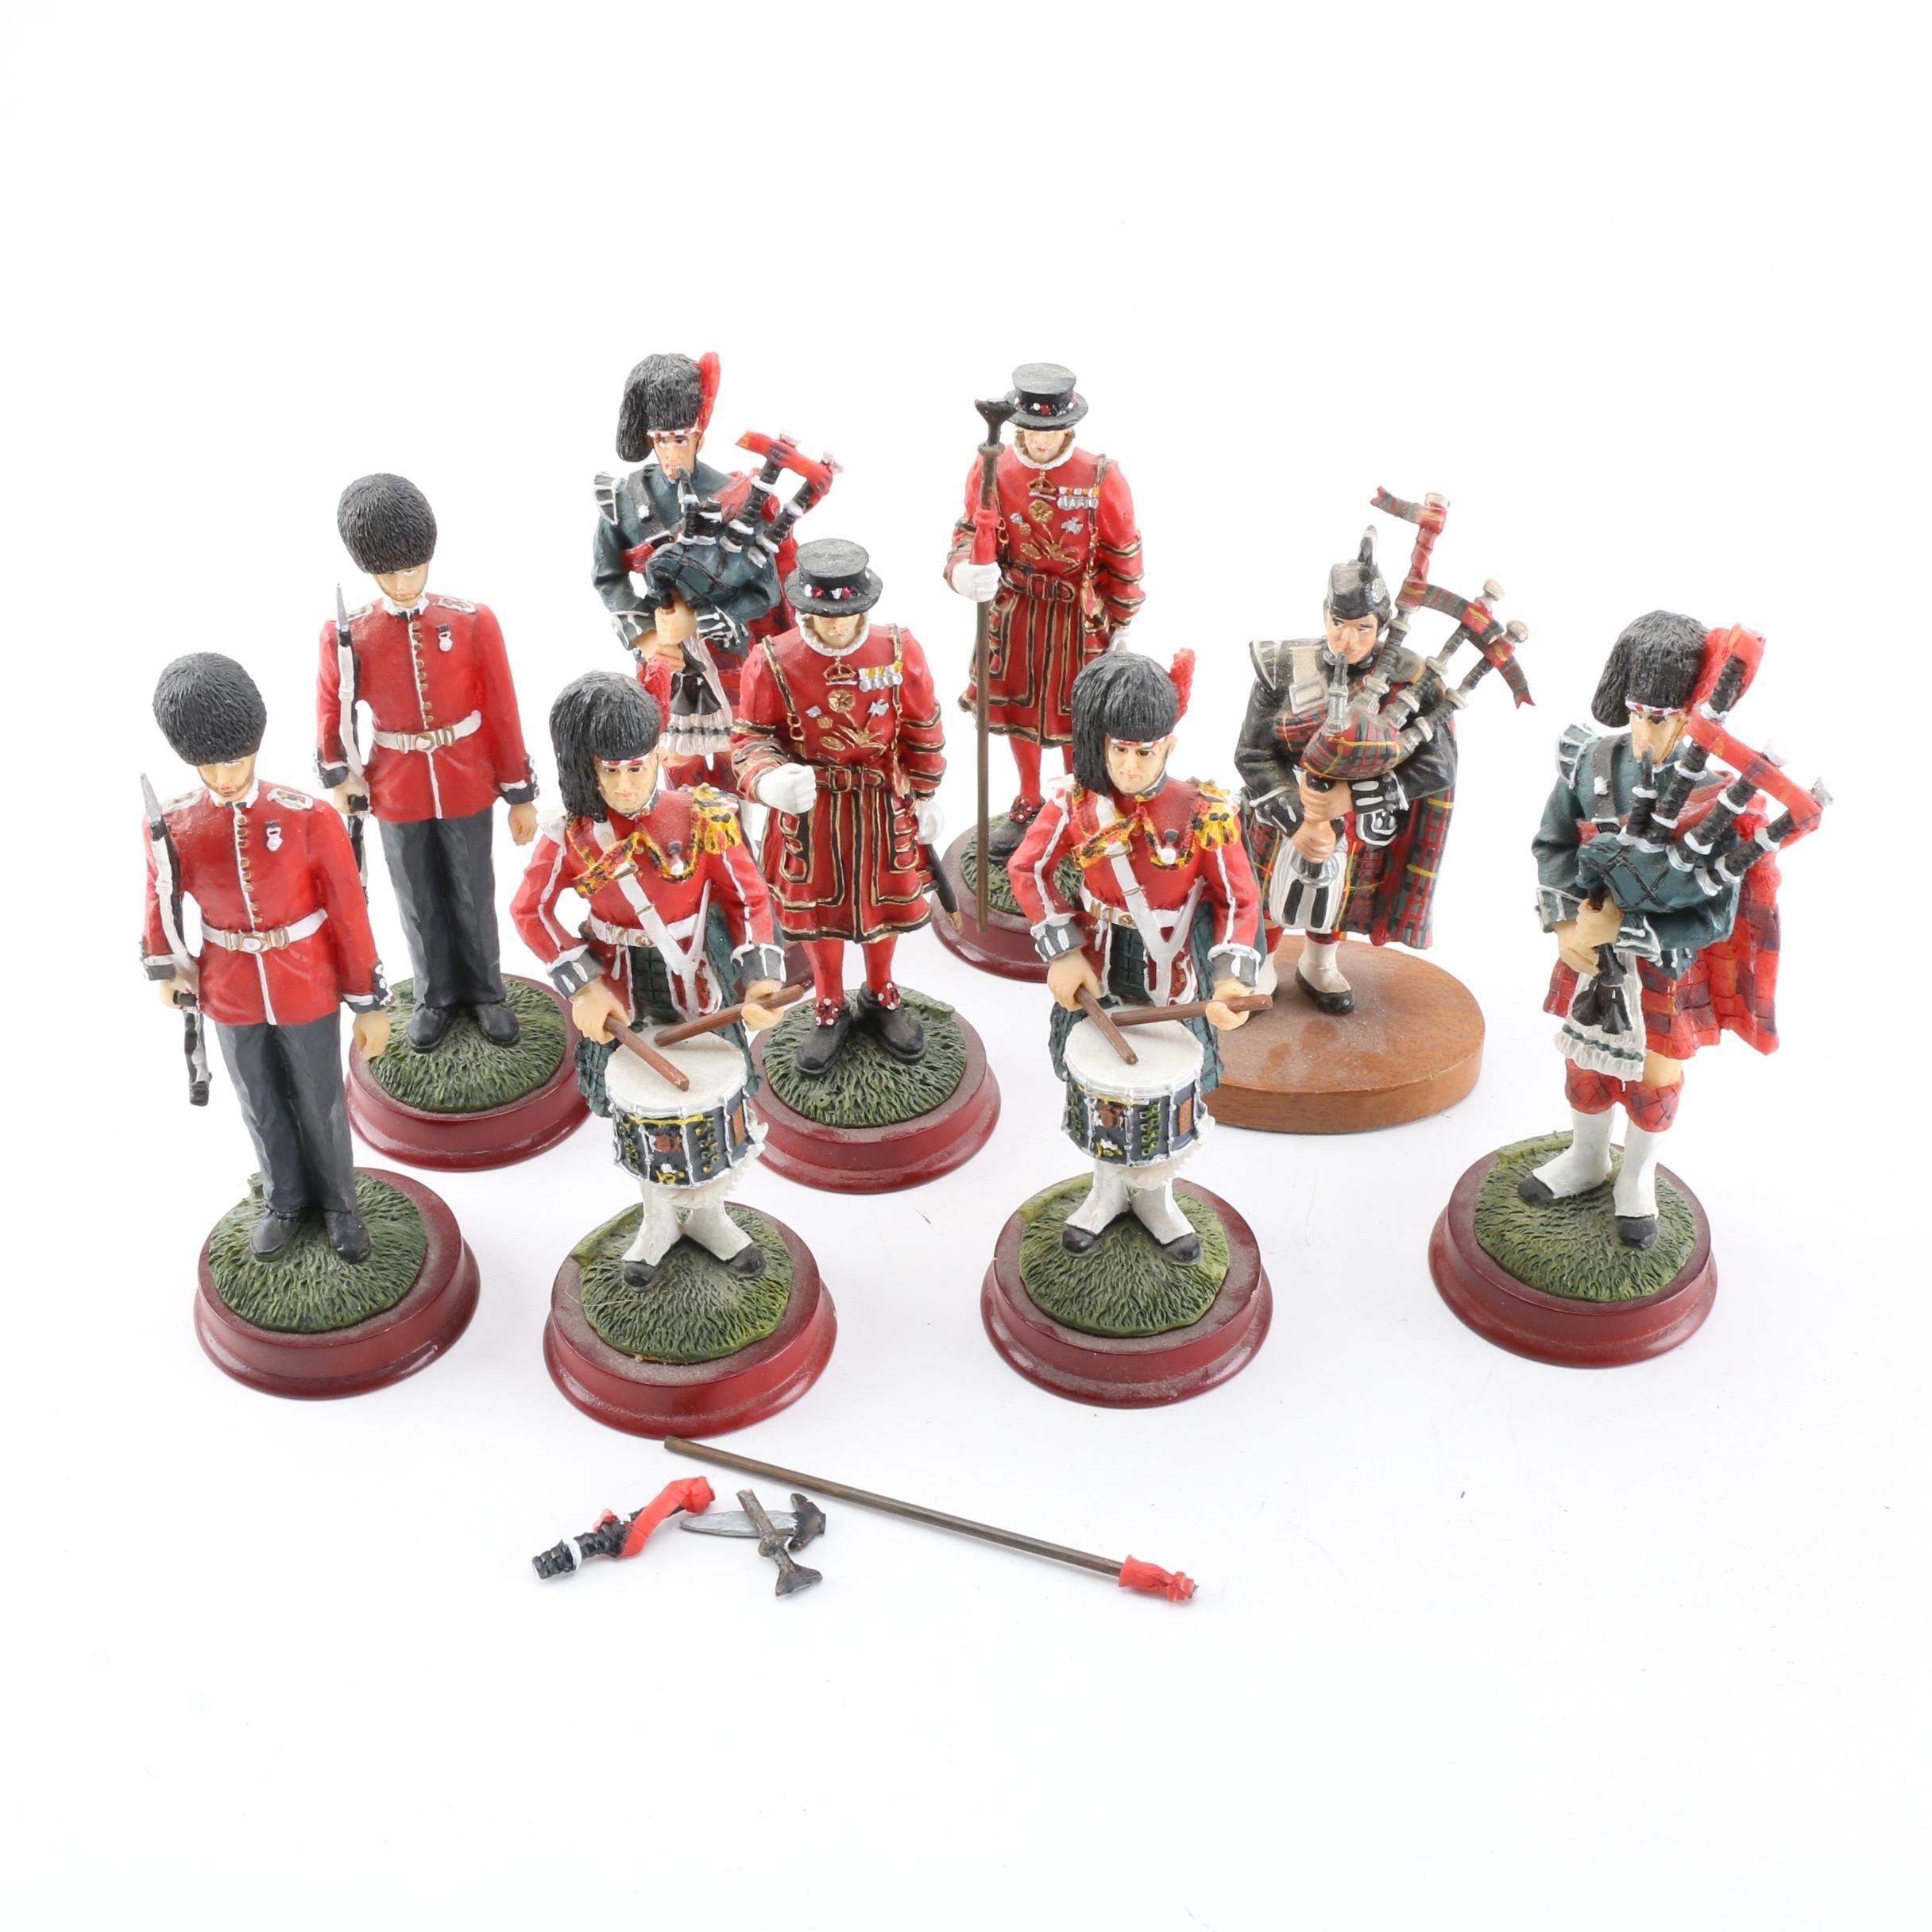 British Military Figurines Including Bagpipers and Beefeaters